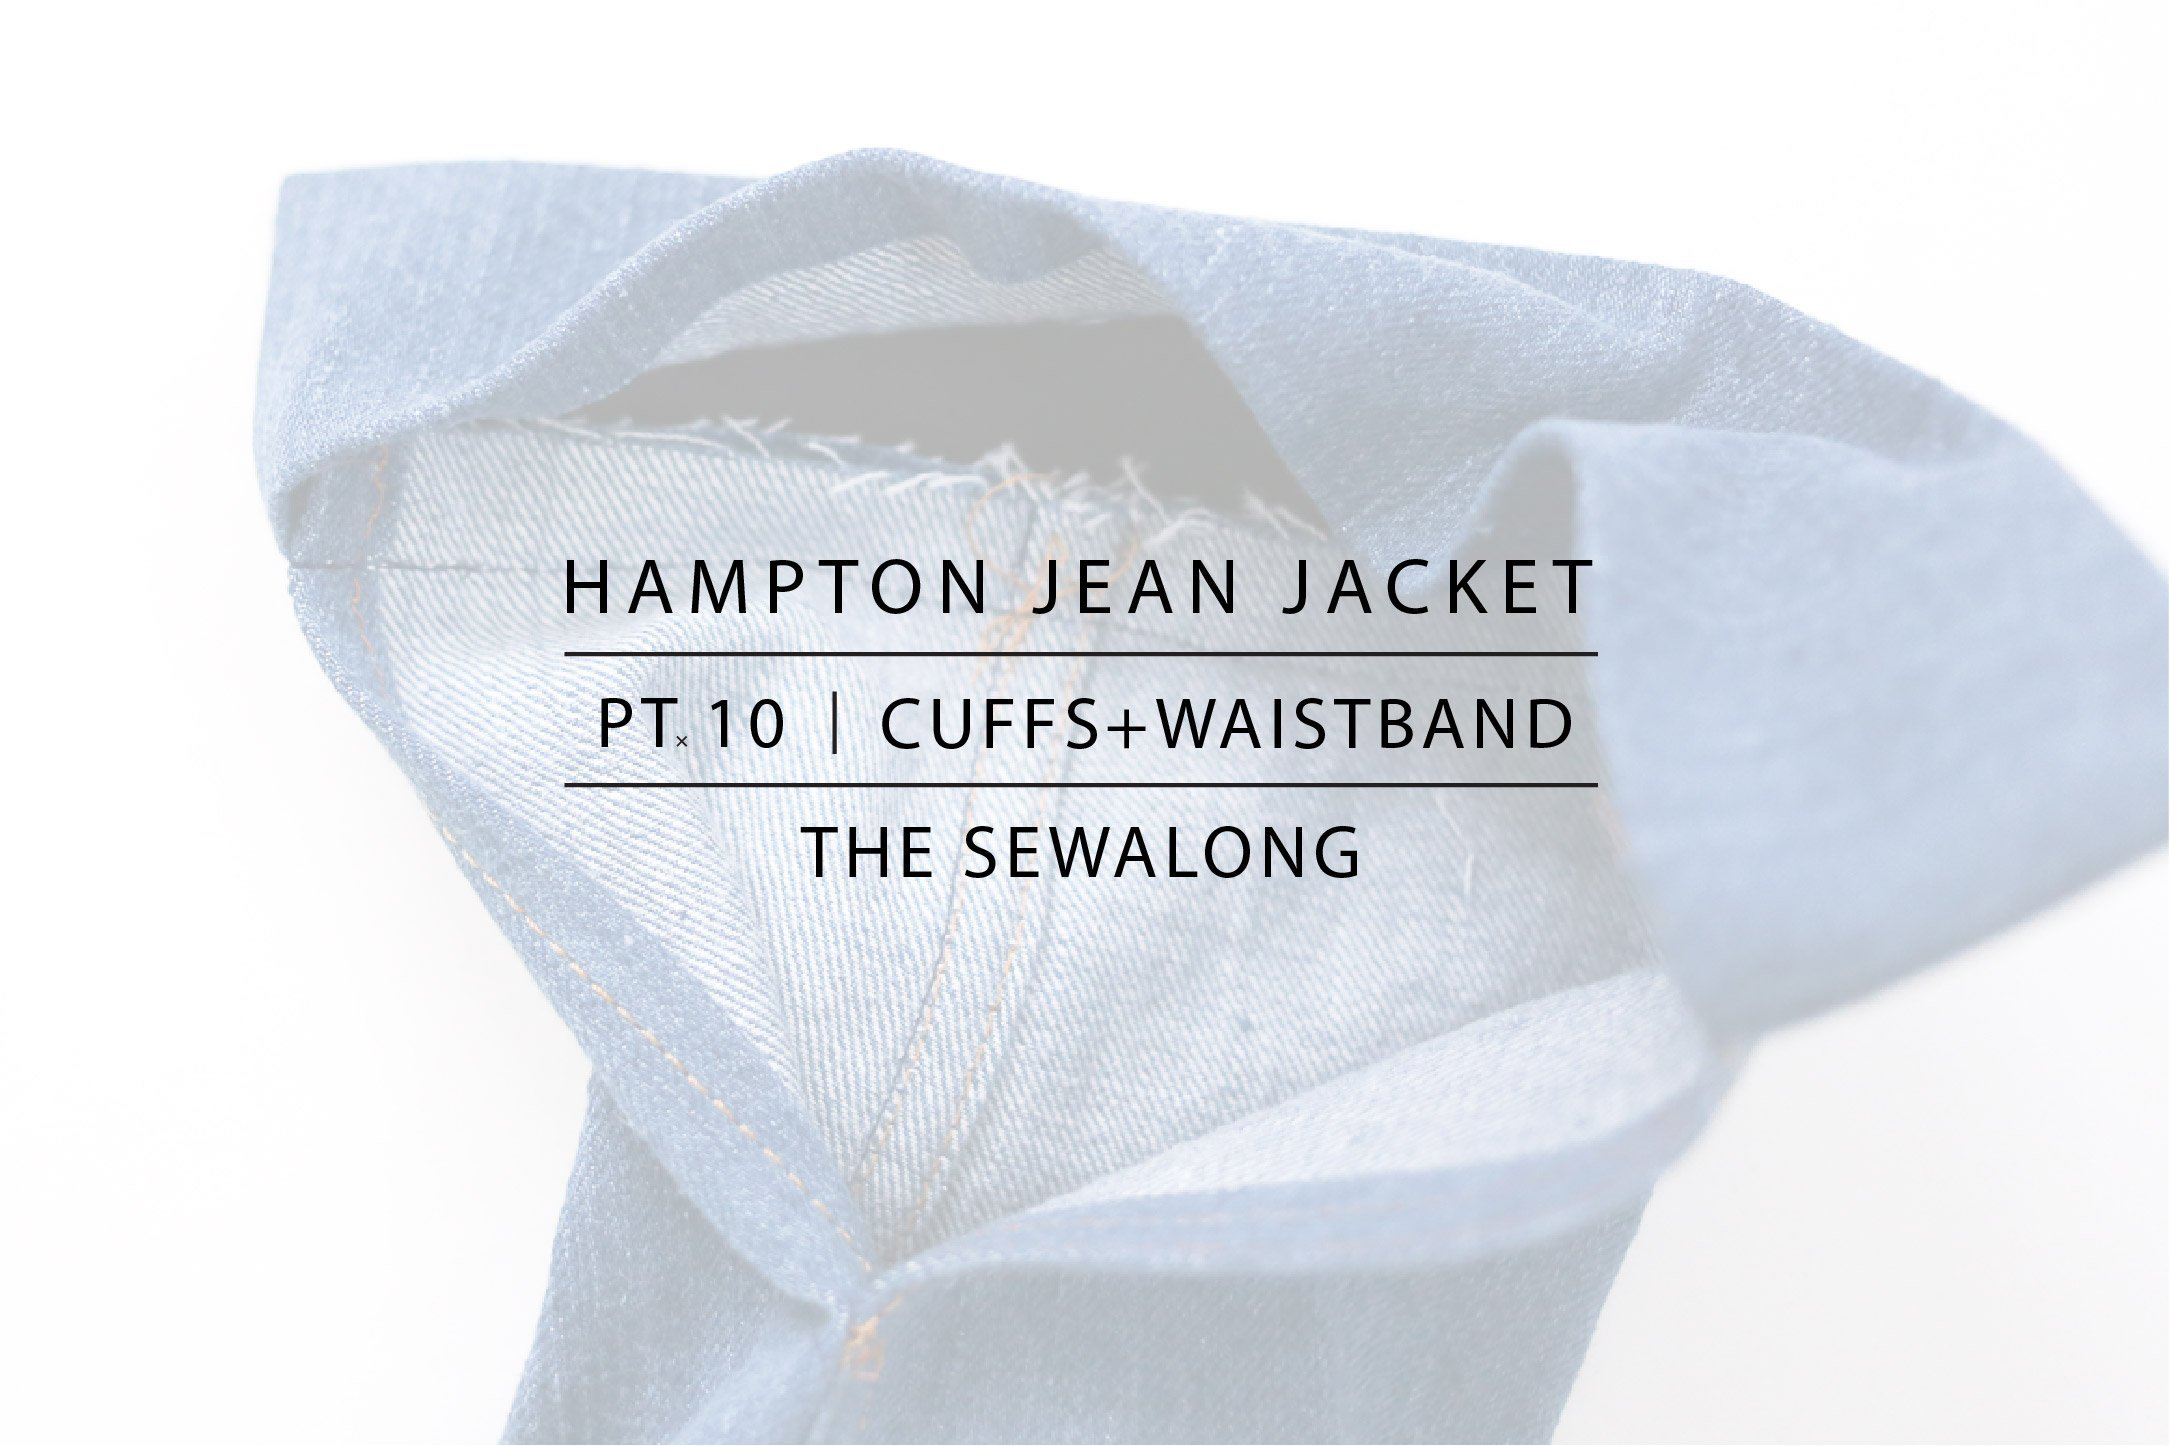 Hampton Jean Jacket Sewalong Pt. 10